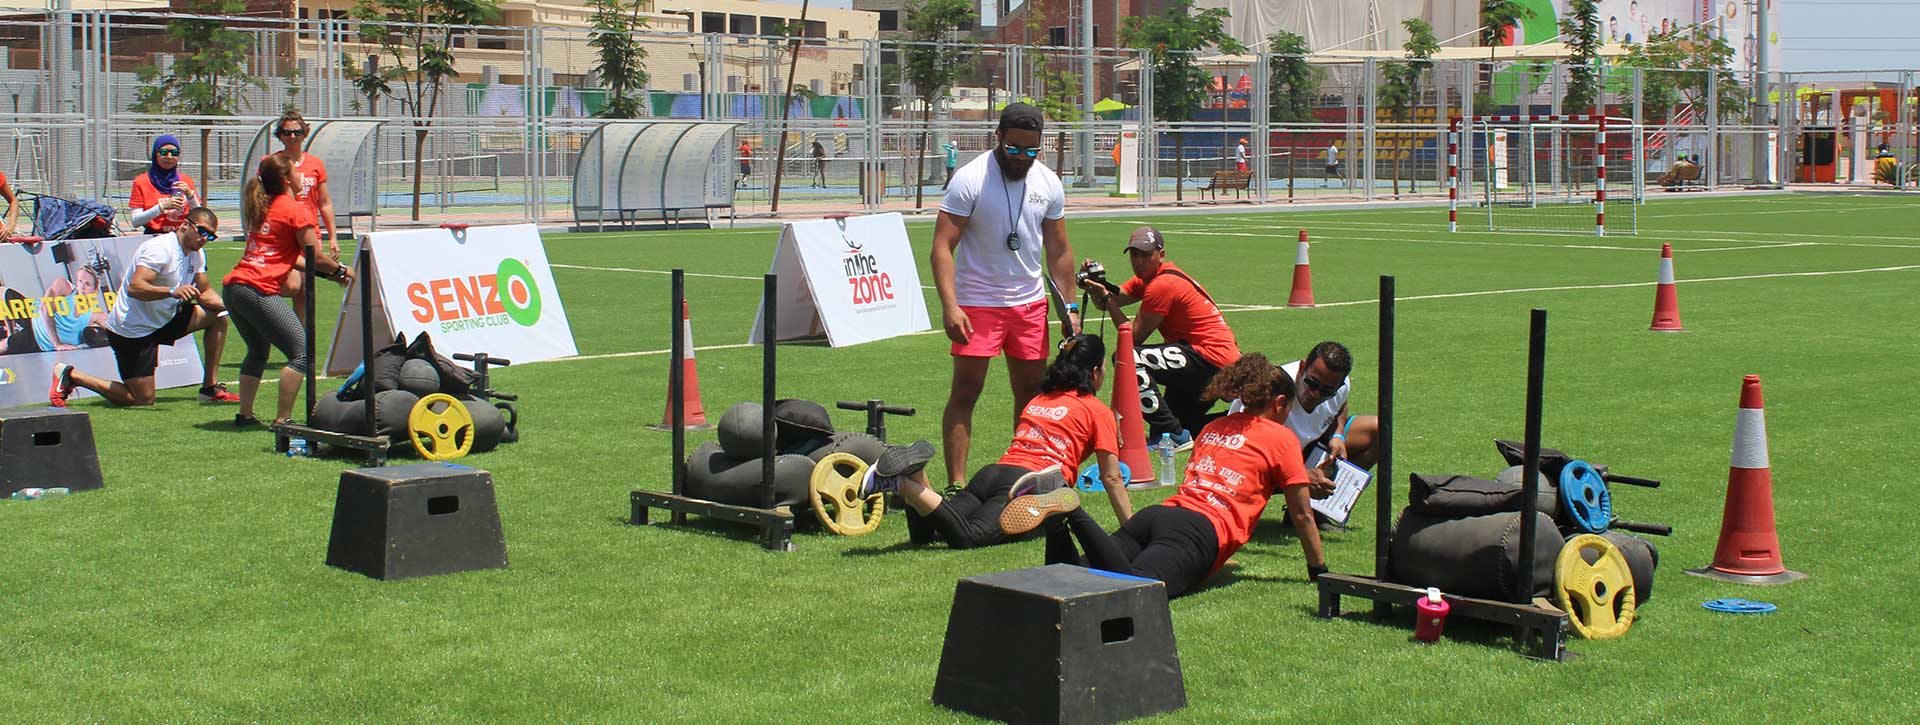 senzo club CAMPS & ATHLETES